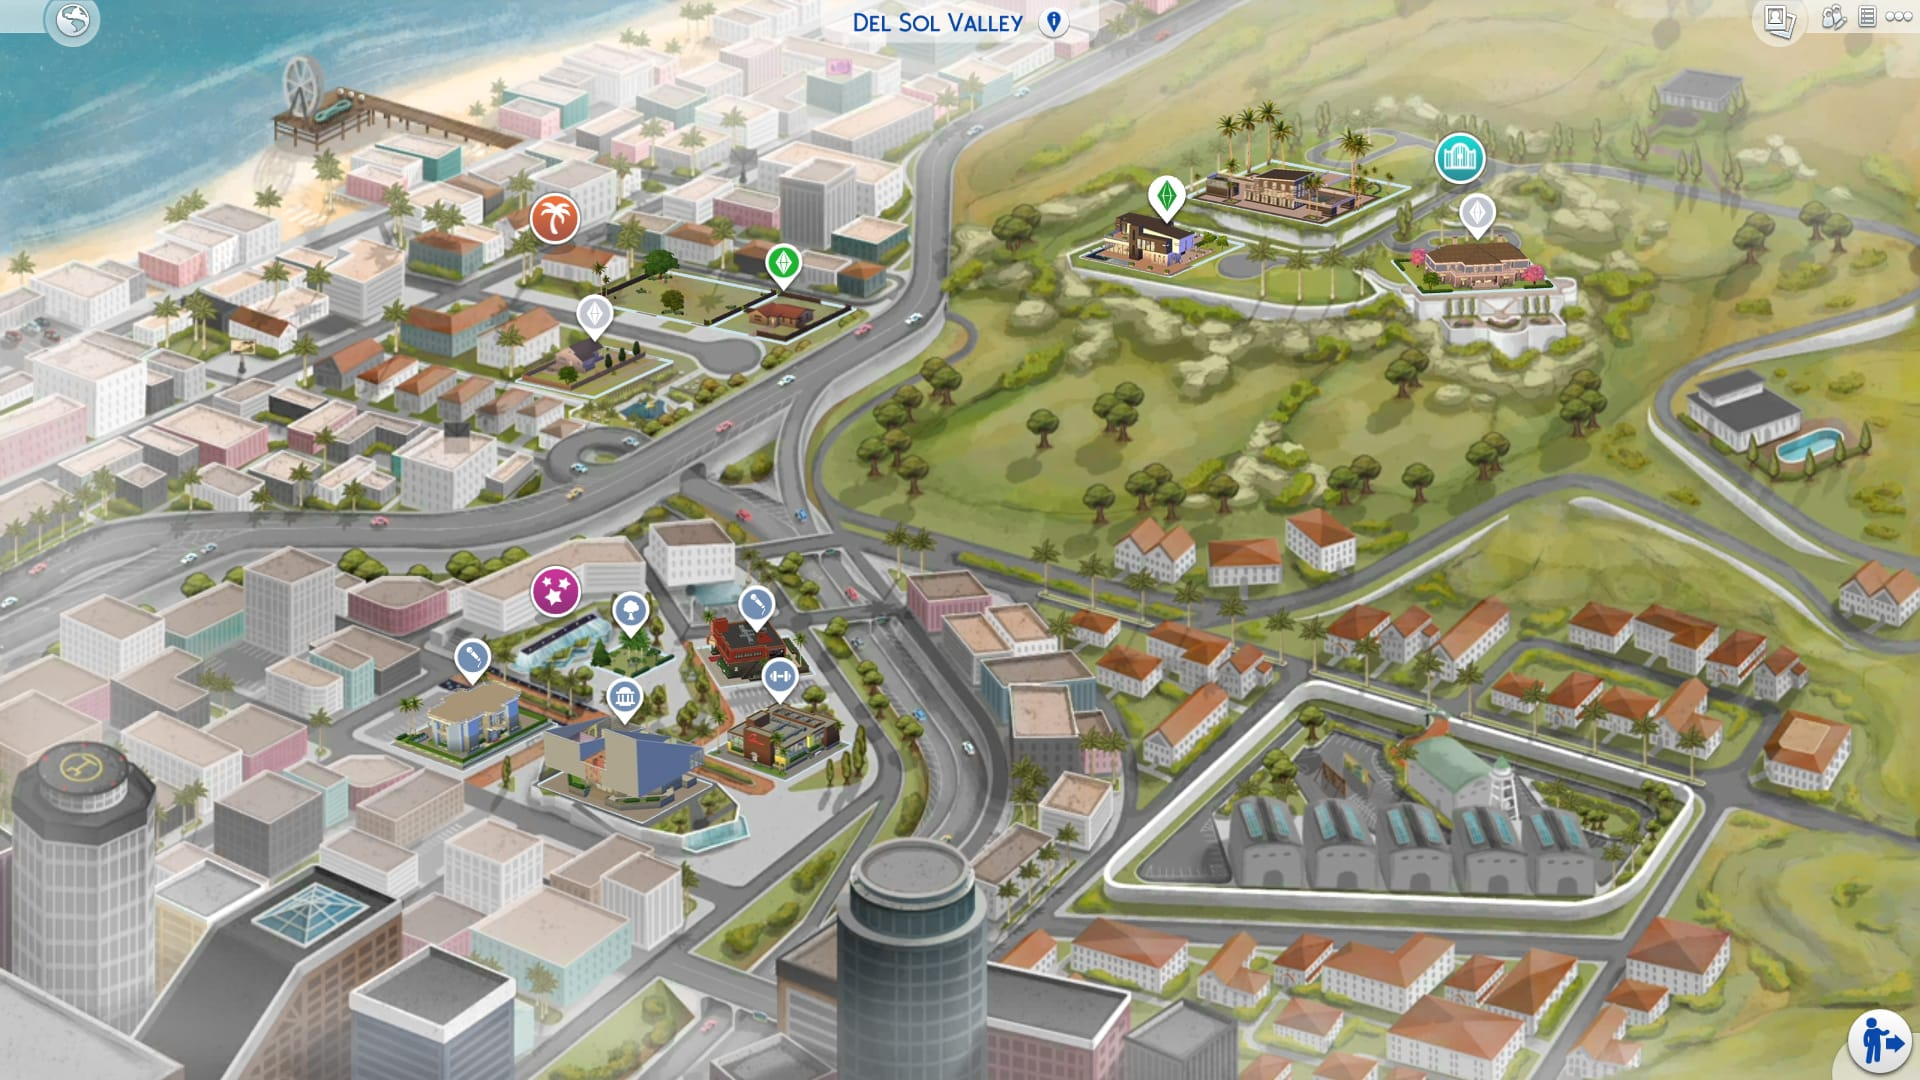 You can now get Custom Map Replacements for all The Sims 4 ... Sims Map on sims castaway, sims 3 houses, sims 3 university life cover, sims 3 yacht, sims 3 map, sims 3 zombie apocalypse, sims 3 sunlit tides, sims 3 mods, sims 3 train, sims 3 world's best, sims 3 weather, sims medieval map,